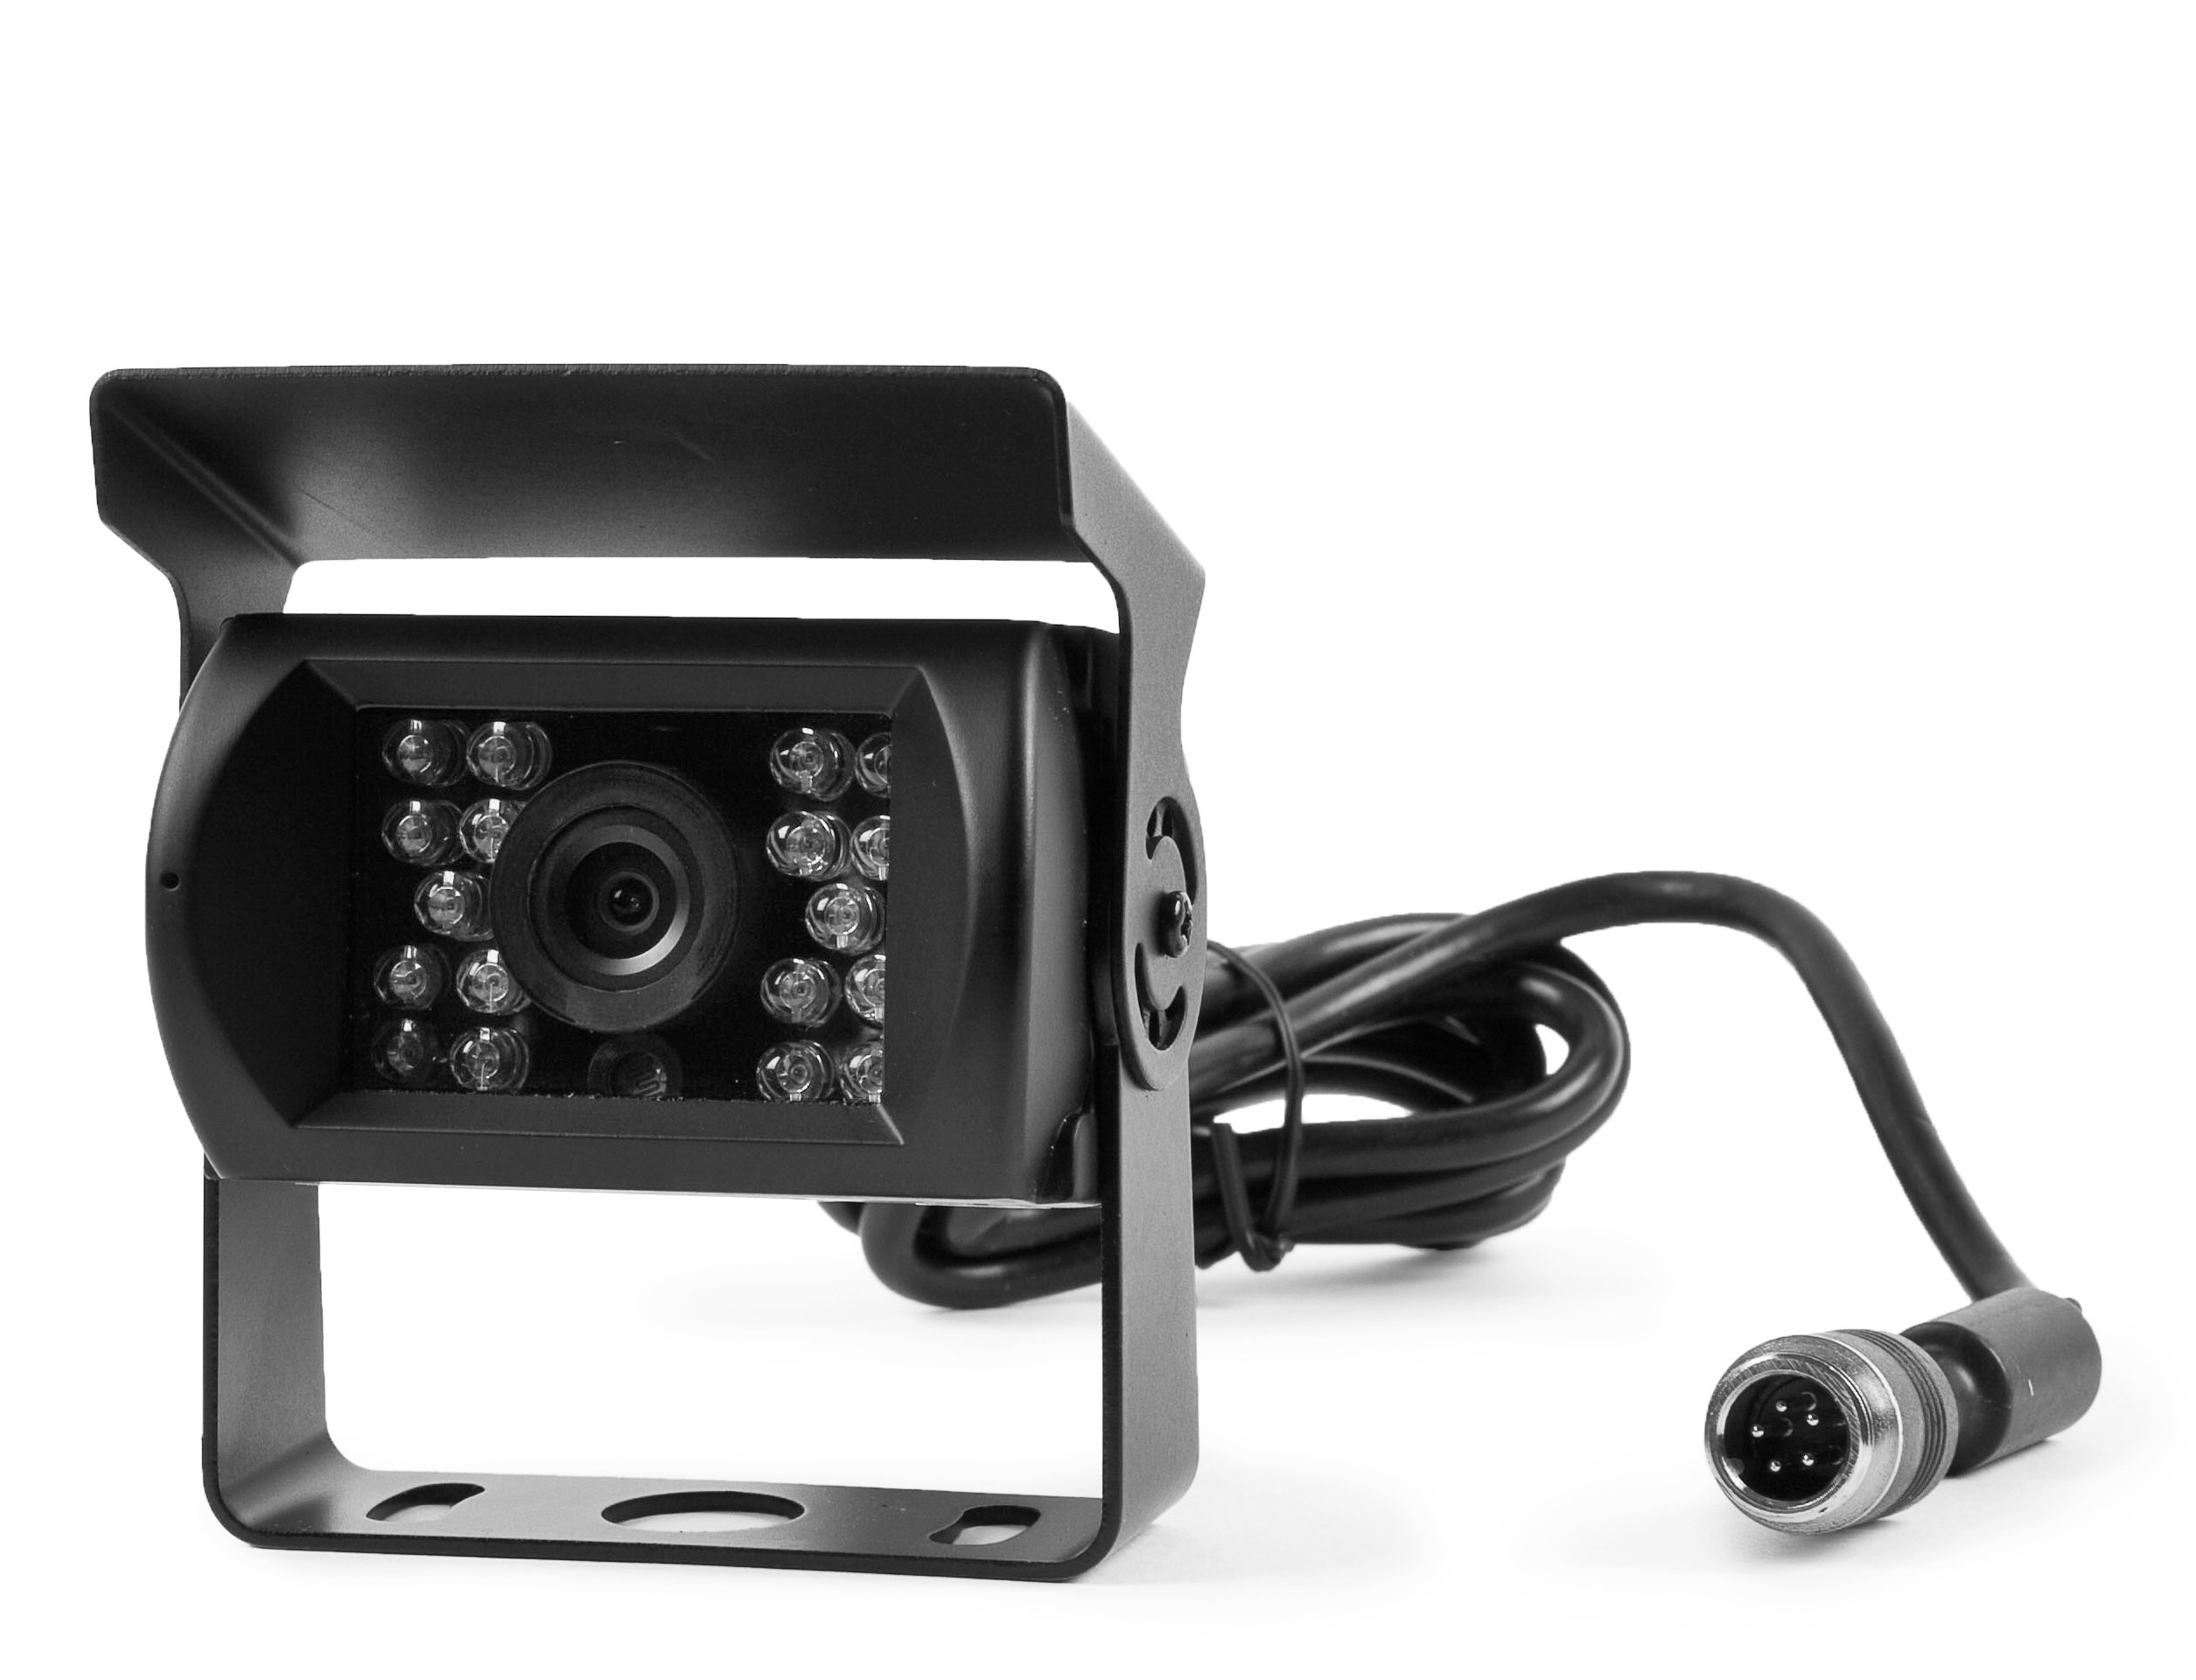 Rear View 130° CCD Back Up Camera with 18 Built in Infra-reds for Rv's, Trucks, Trailers - Built-in Microphone to Hear Surroundings